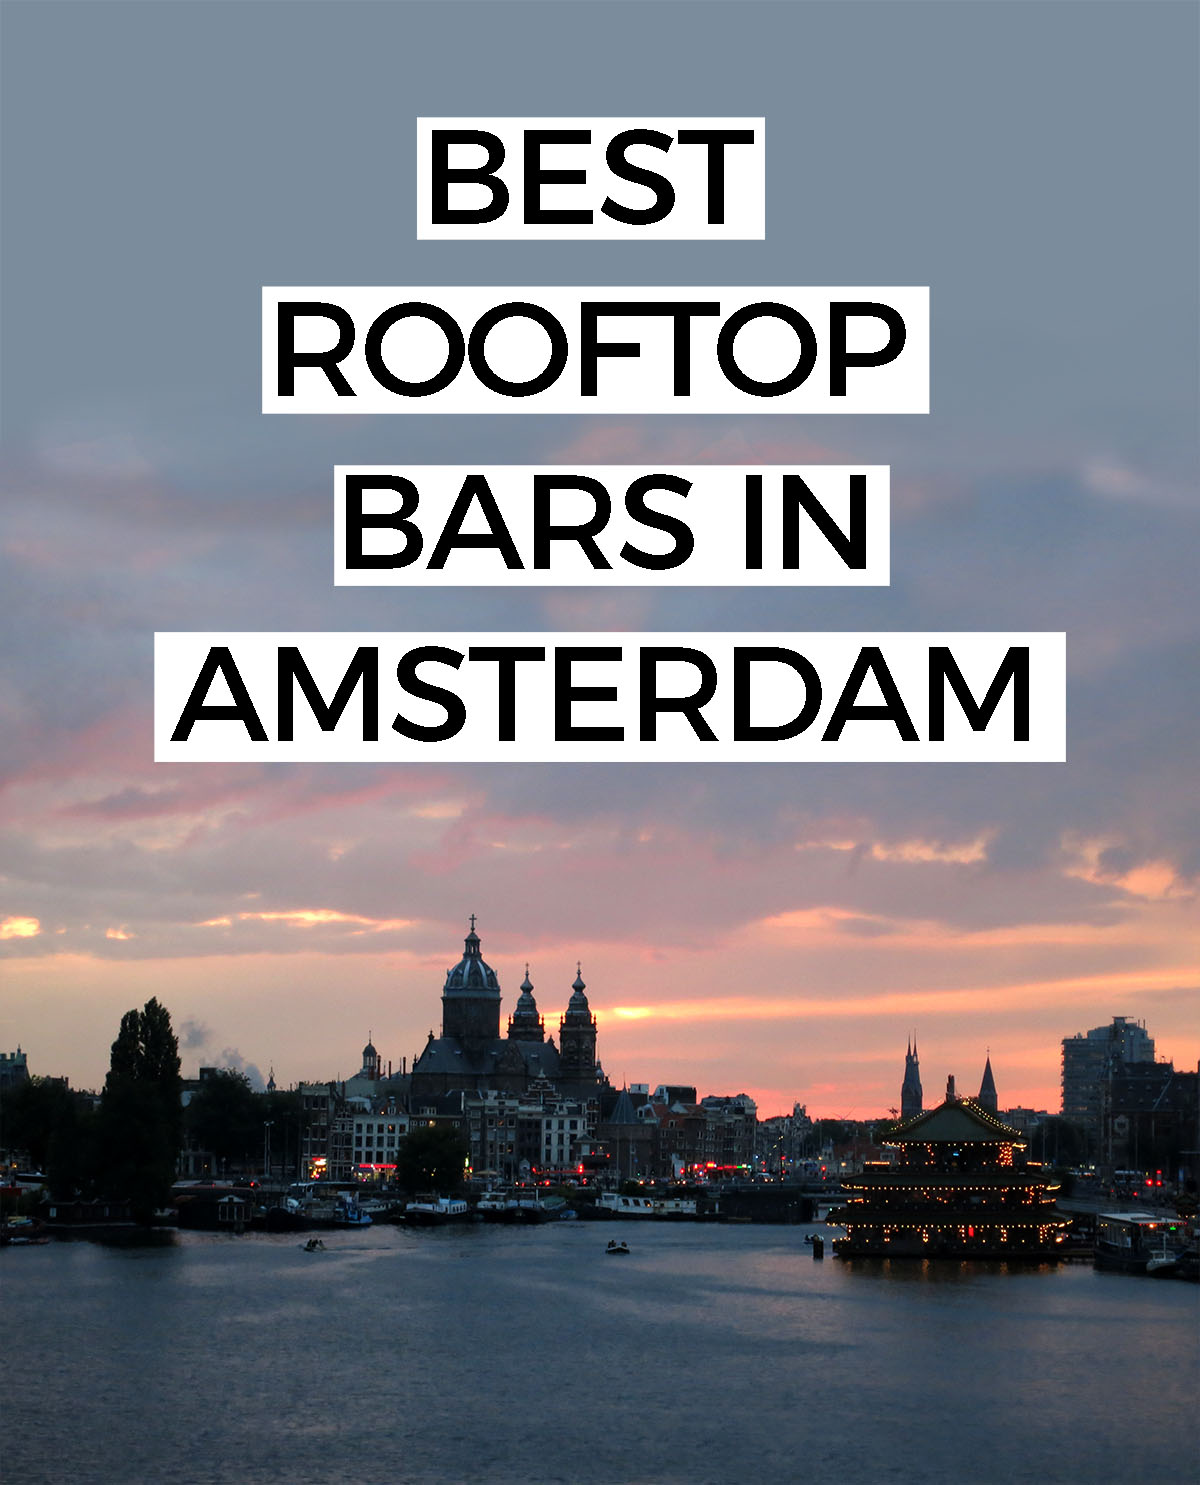 BEST ROOFTOP BARS IN AMSTERDAM - Enjoy a drink while looking out over an amazing view of Amsterdam's skyline? Yes please! Here are our favorite rooftop and sky bars in Amsterdam.